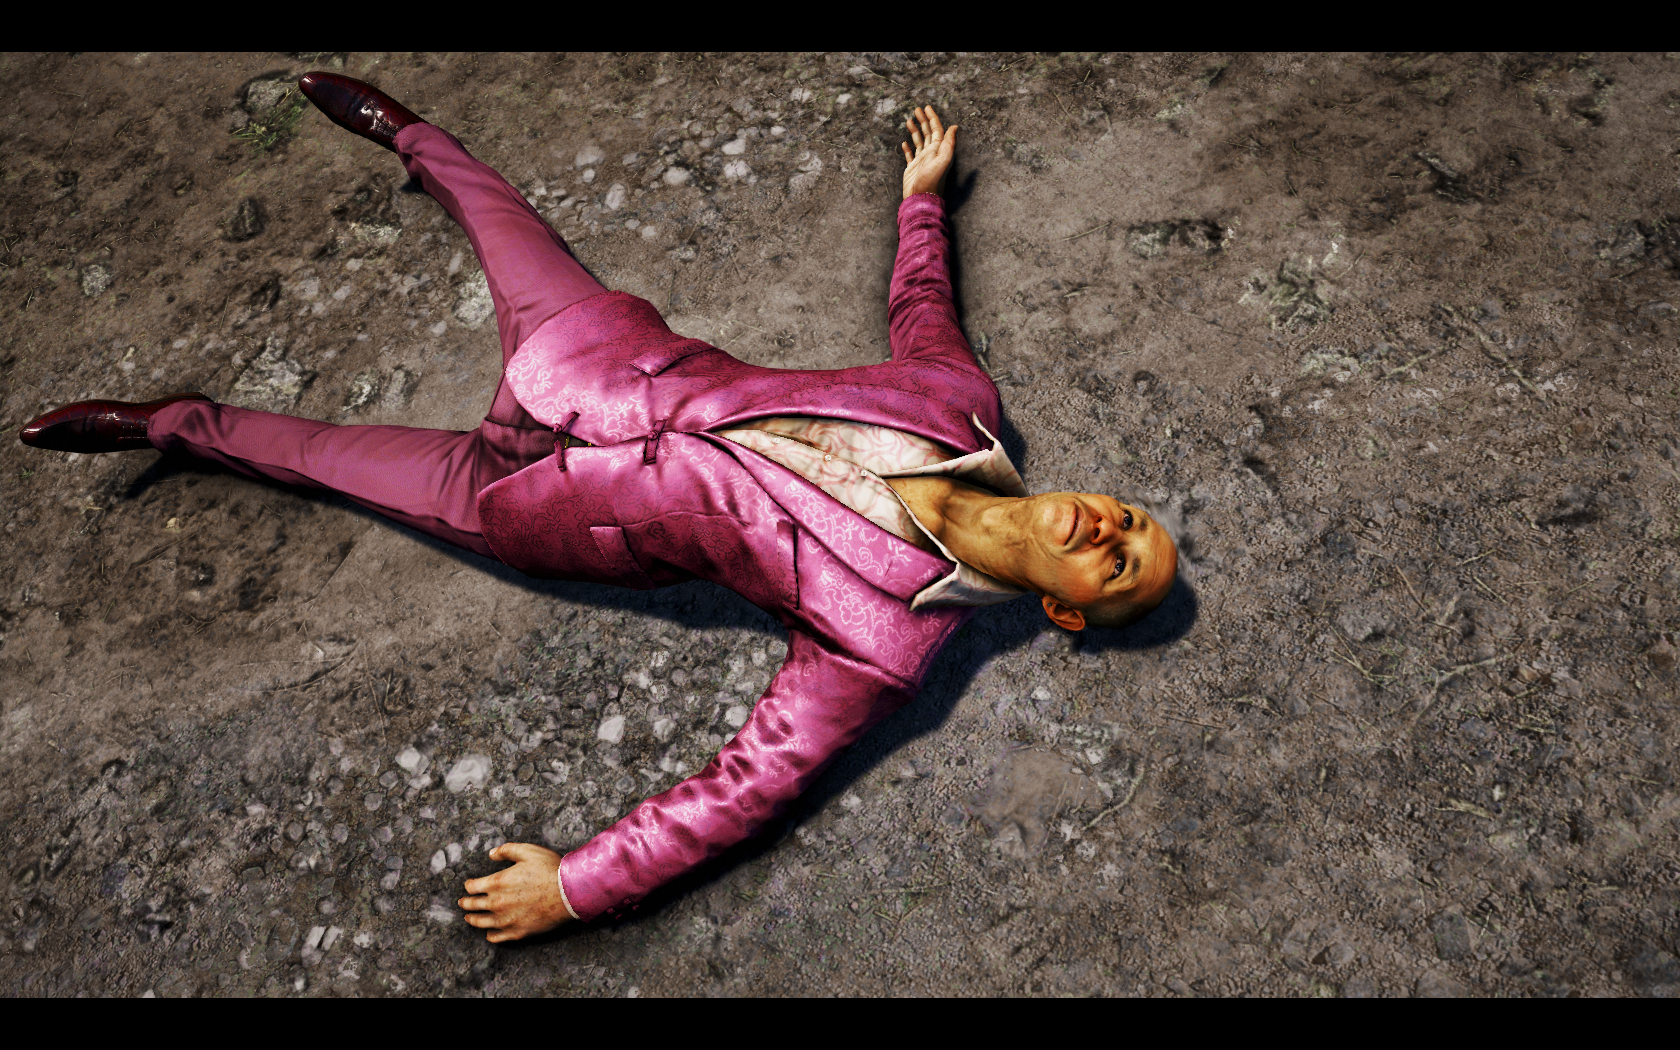 http://vignette4.wikia.nocookie.net/farcry/images/0/00/Eric_Body.png/revision/latest?cb=20160628113350